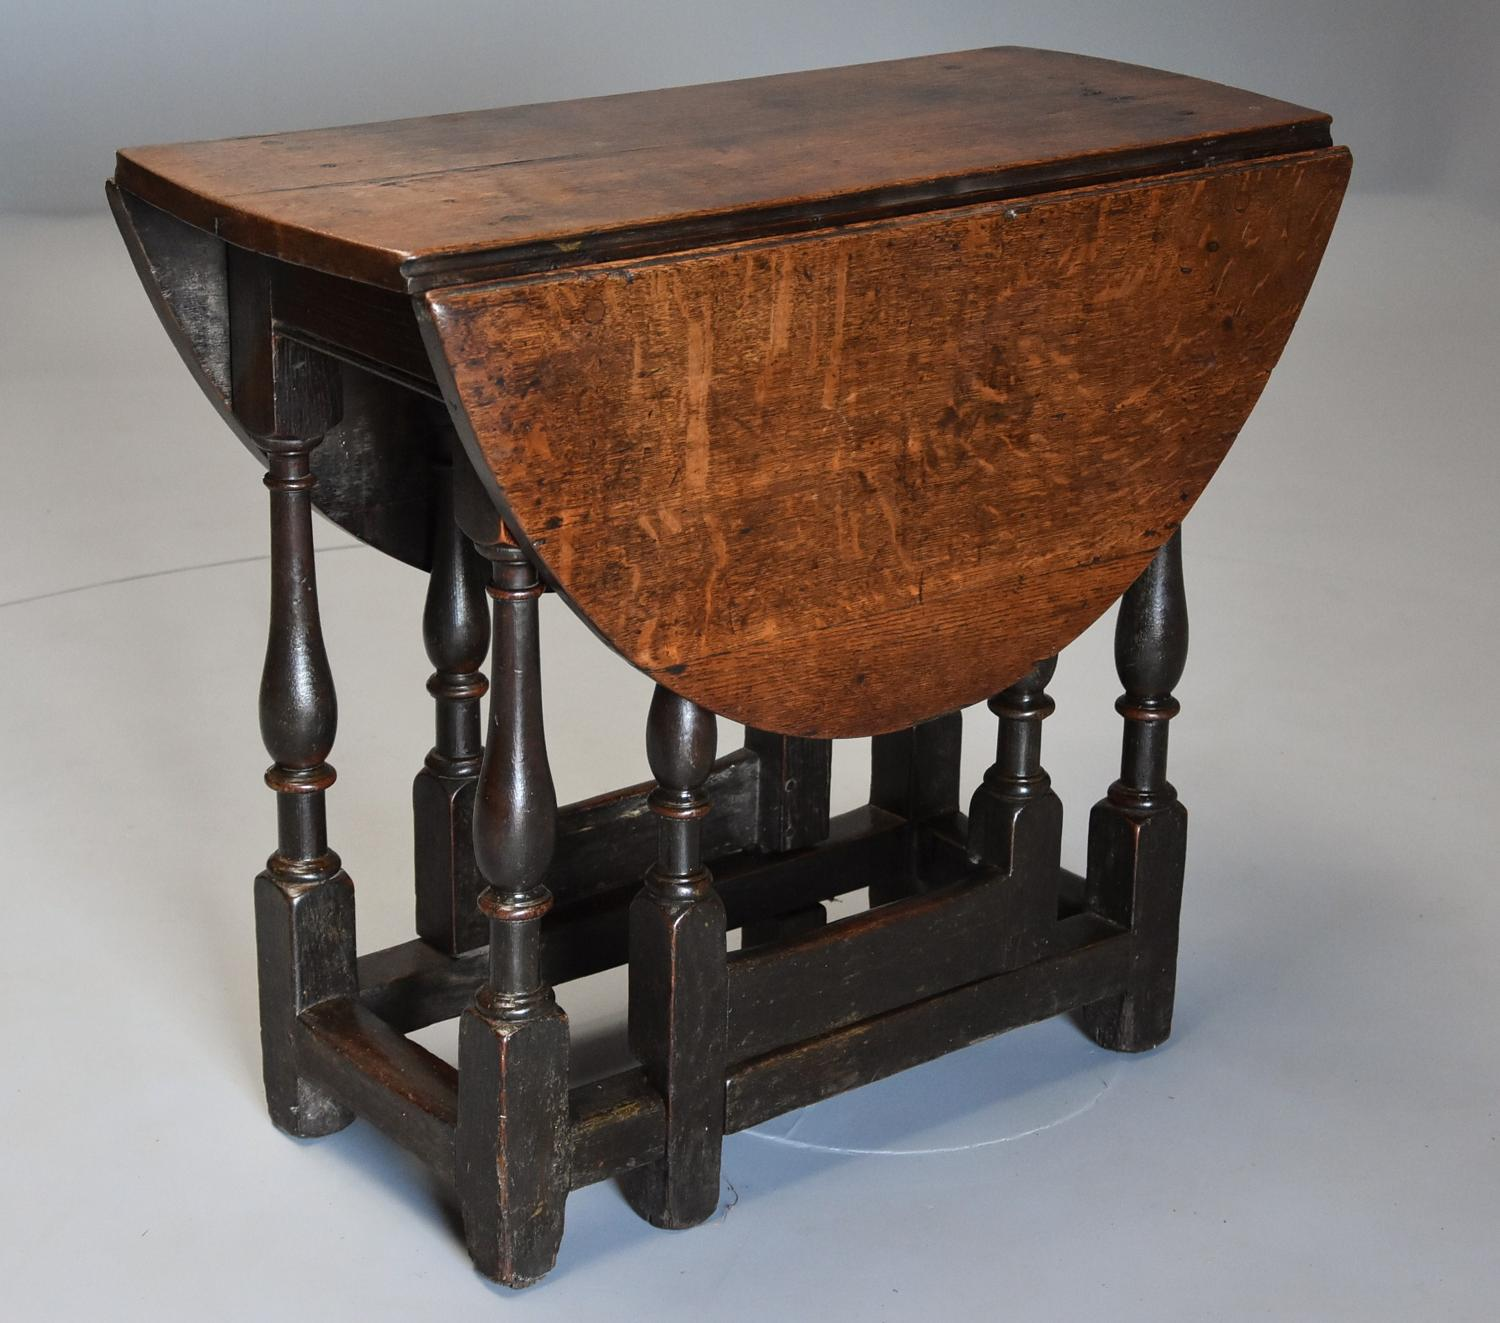 Late 17th century small oak gateleg table of good patina